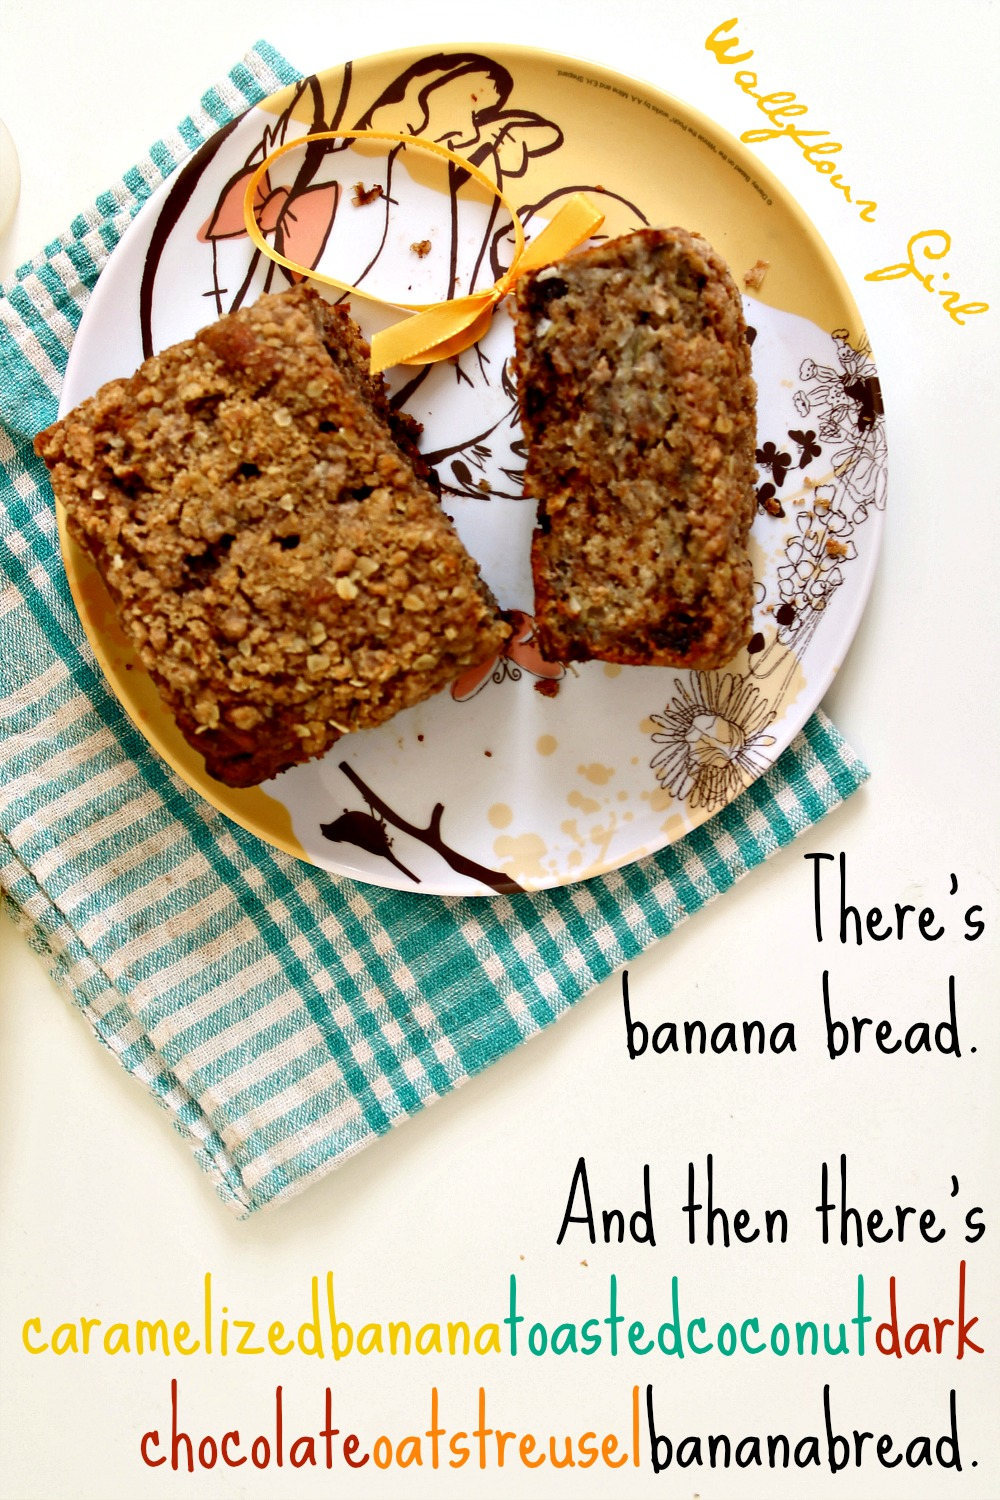 Scrumdiddlyumptious Caramelized Banana and Toasted Coconut Banana Bread 14--013014